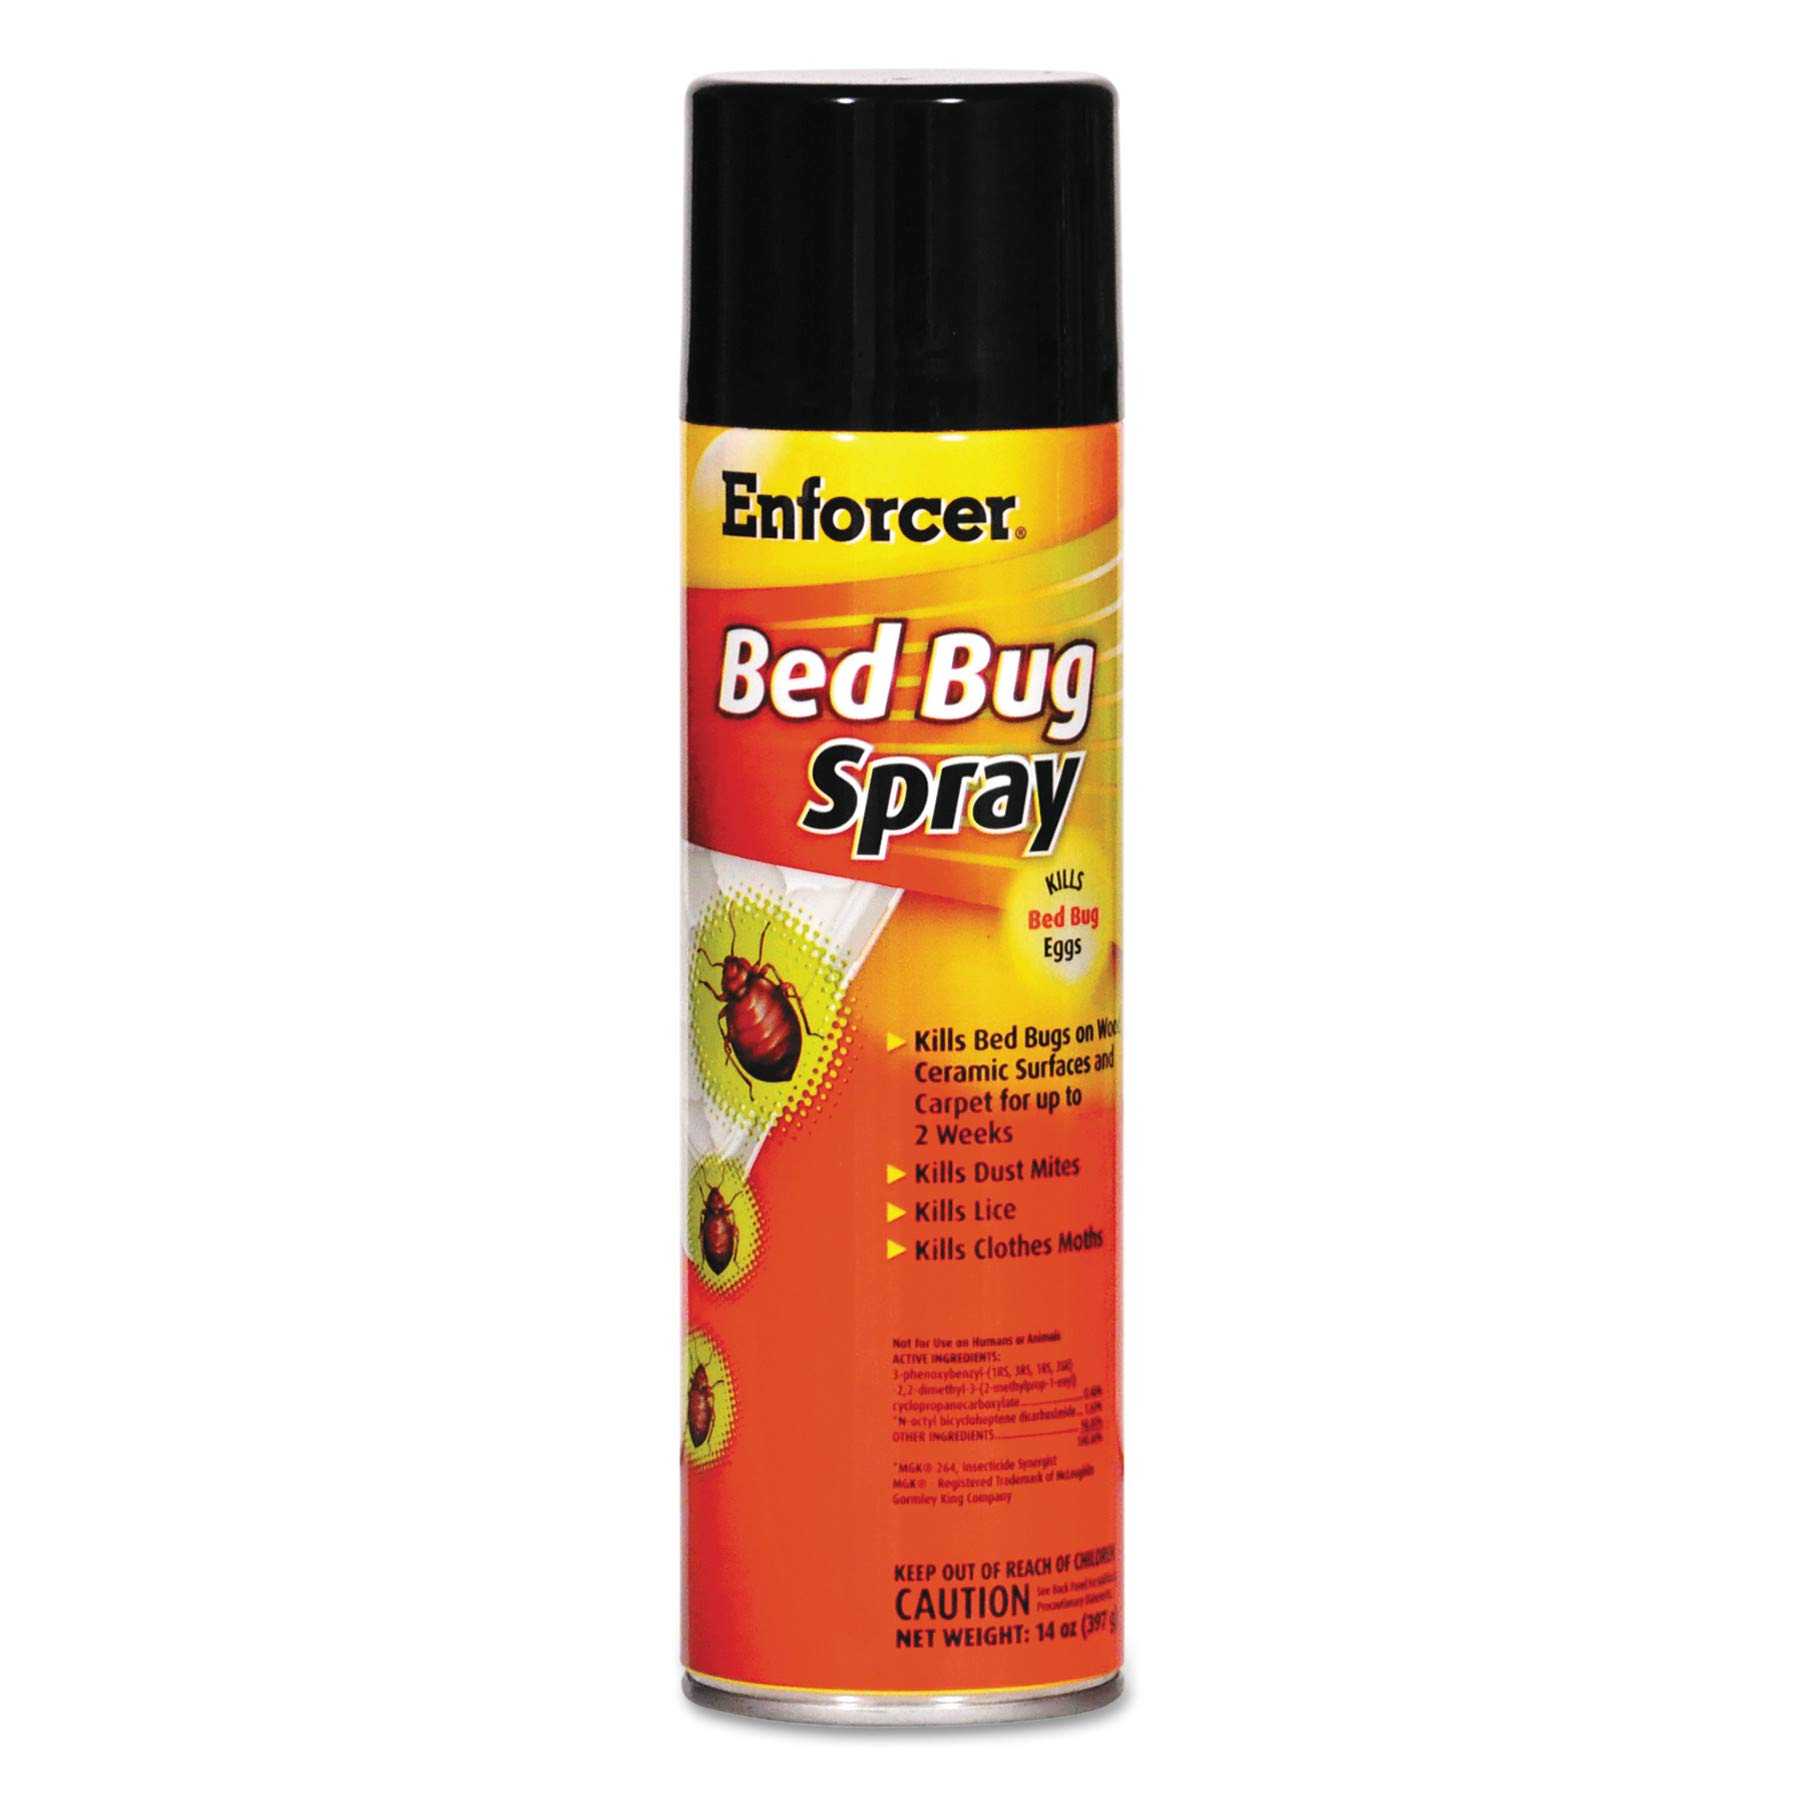 Enforcer 1043287 Bed Bug Spray for Bed BUGS/Dust Mites/Lice/Moths, 14 oz Aerosol, 14 Ounces, 1'' Height, 1'' width (Pack of 12)